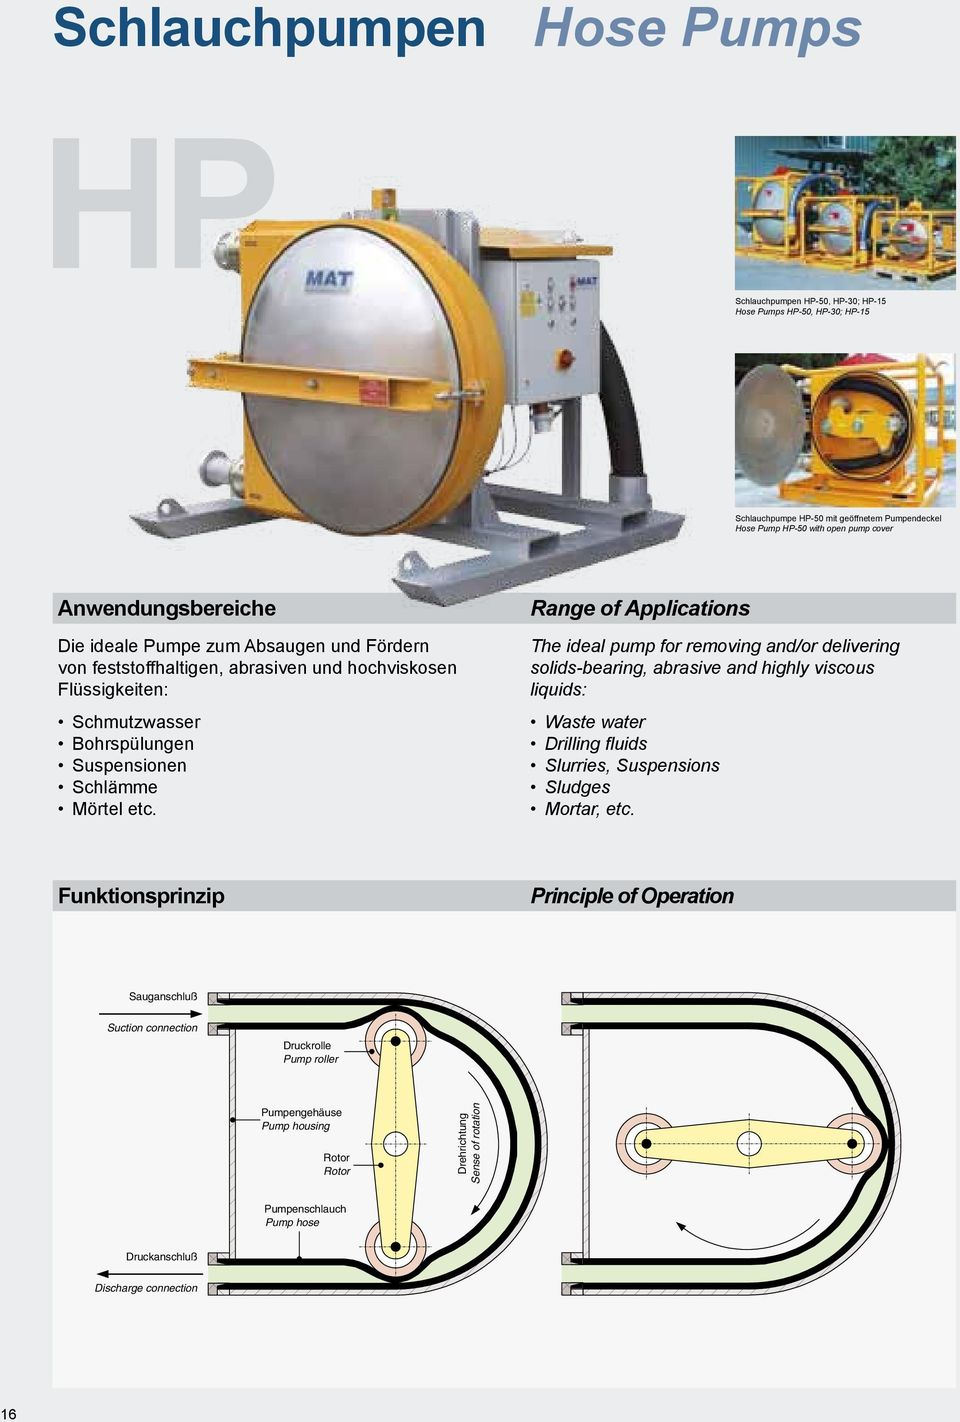 Range of Applications The ideal pump for removing and/or delivering solids-bearing, abrasive and highly viscous liquids: Waste water Drilling fluids Slurries, Suspensions Sludges Mortar, etc.